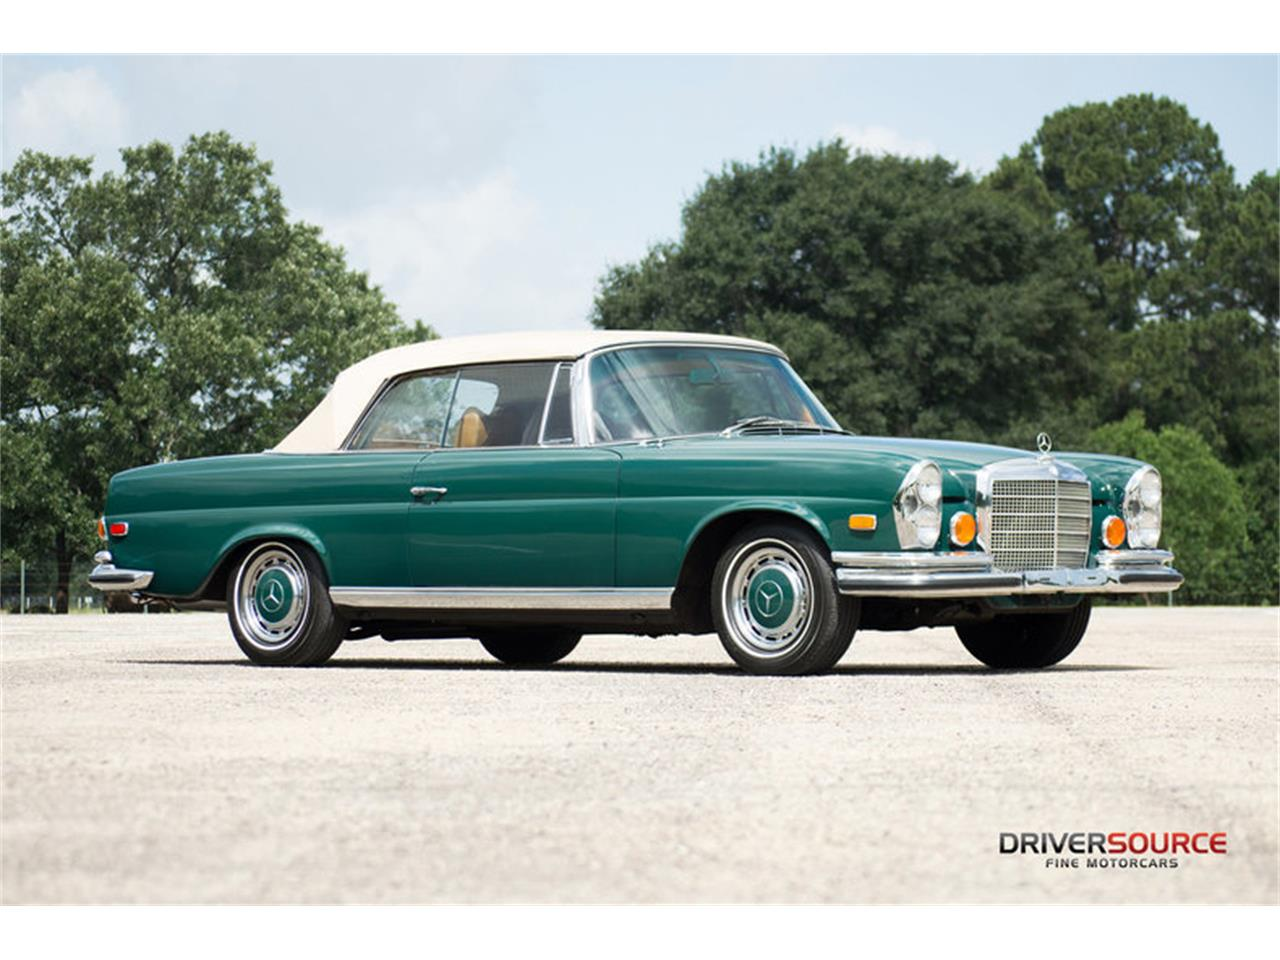 Large Picture of Classic 1971 Mercedes-Benz 280SE - $395,000.00 Offered by Driversource - LAC0